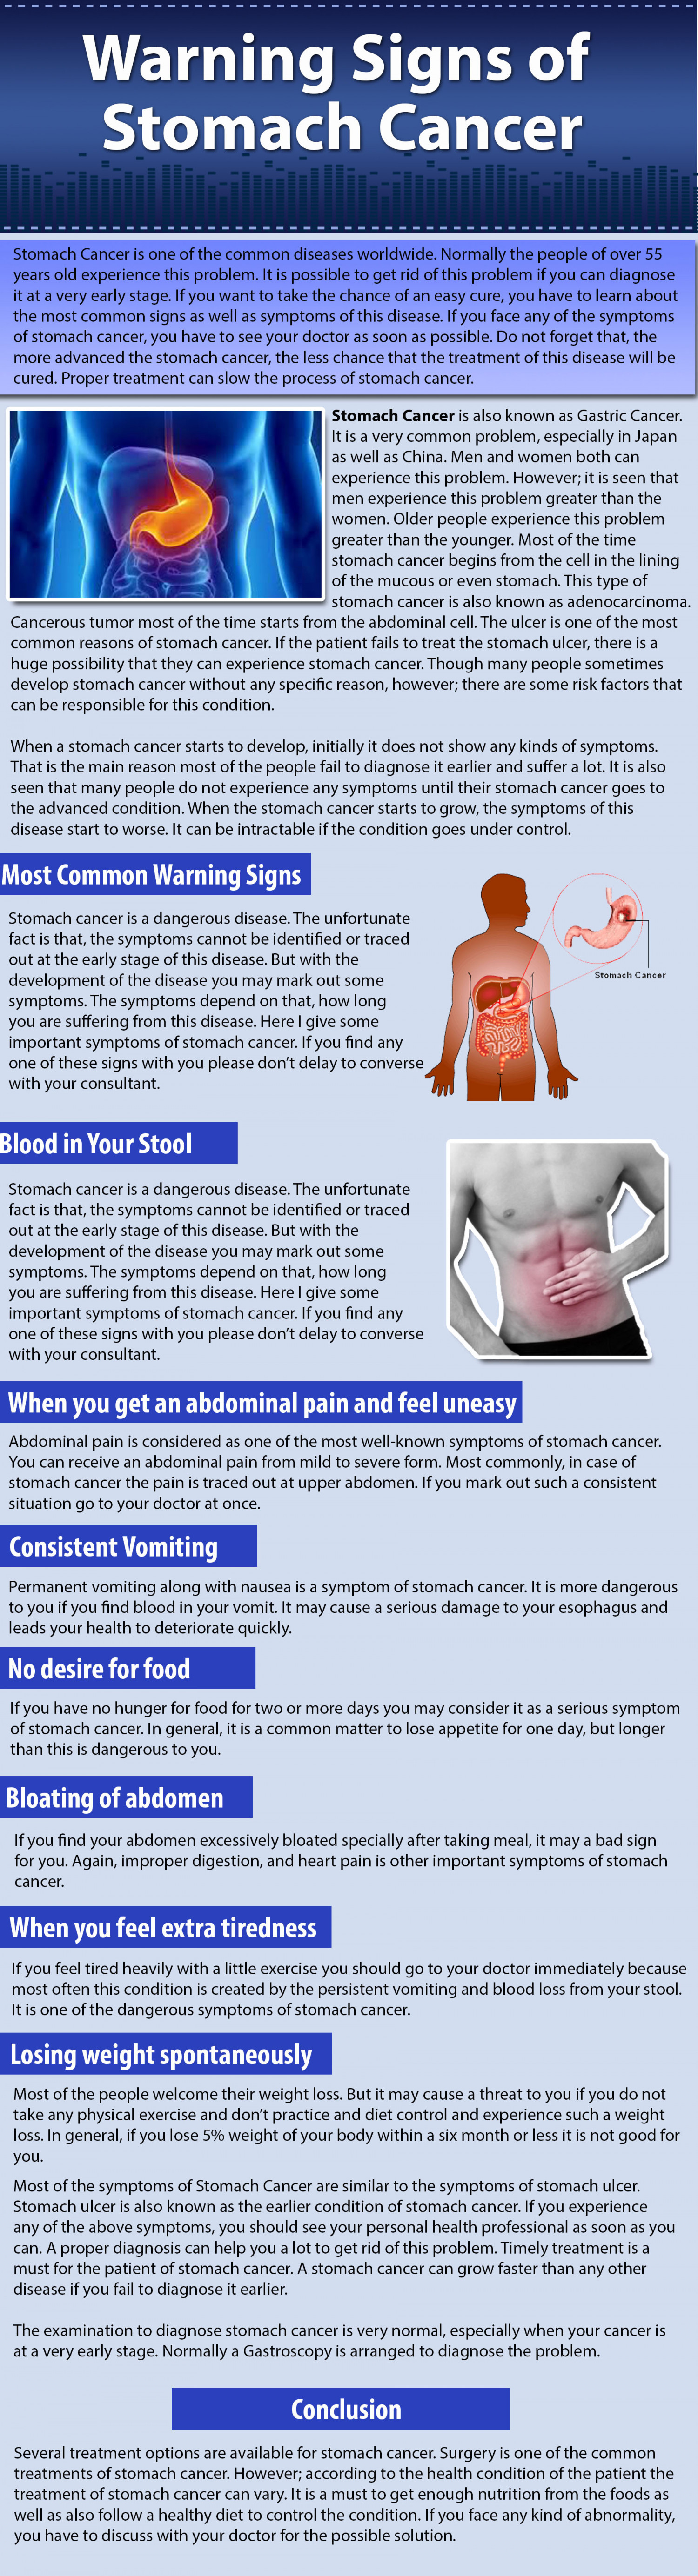 Warning Signs of Stomach Cancer Infographic